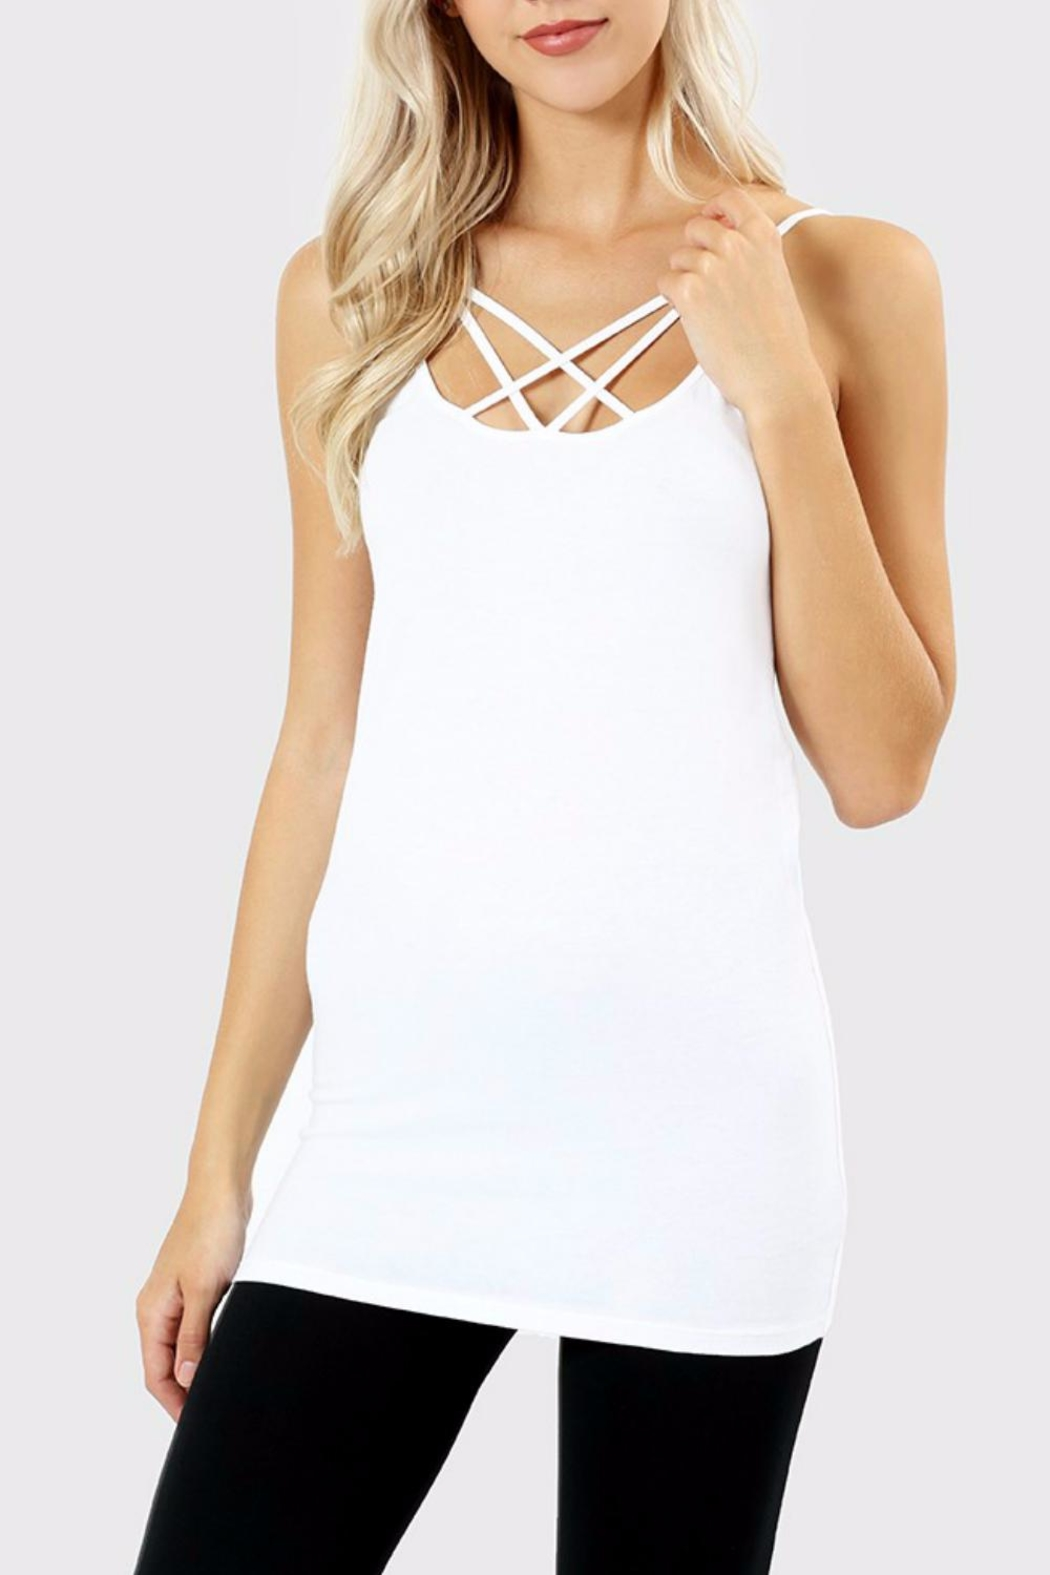 Zenana Outfitters White Caged Cami - Main Image